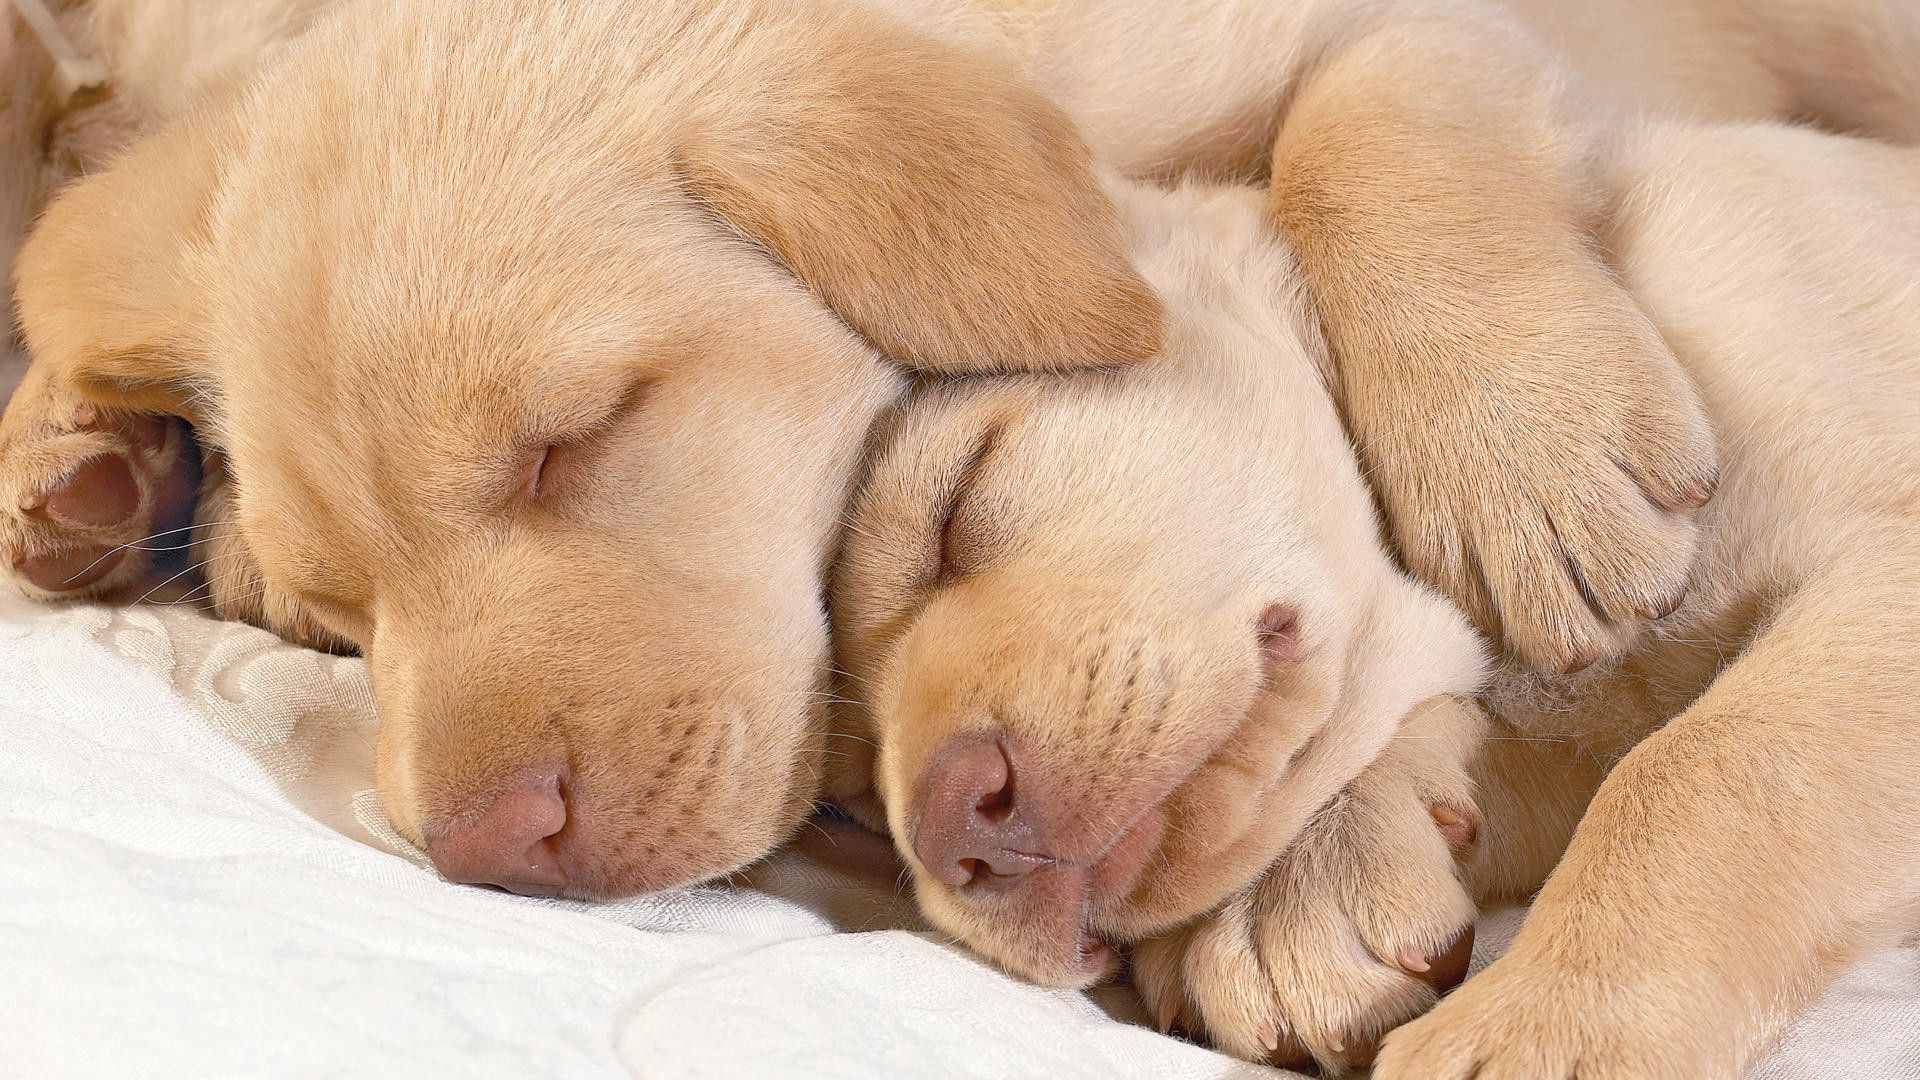 110162 download wallpaper Animals, Puppies, Sleep, Dream, Muzzle, Toddlers, Kids screensavers and pictures for free